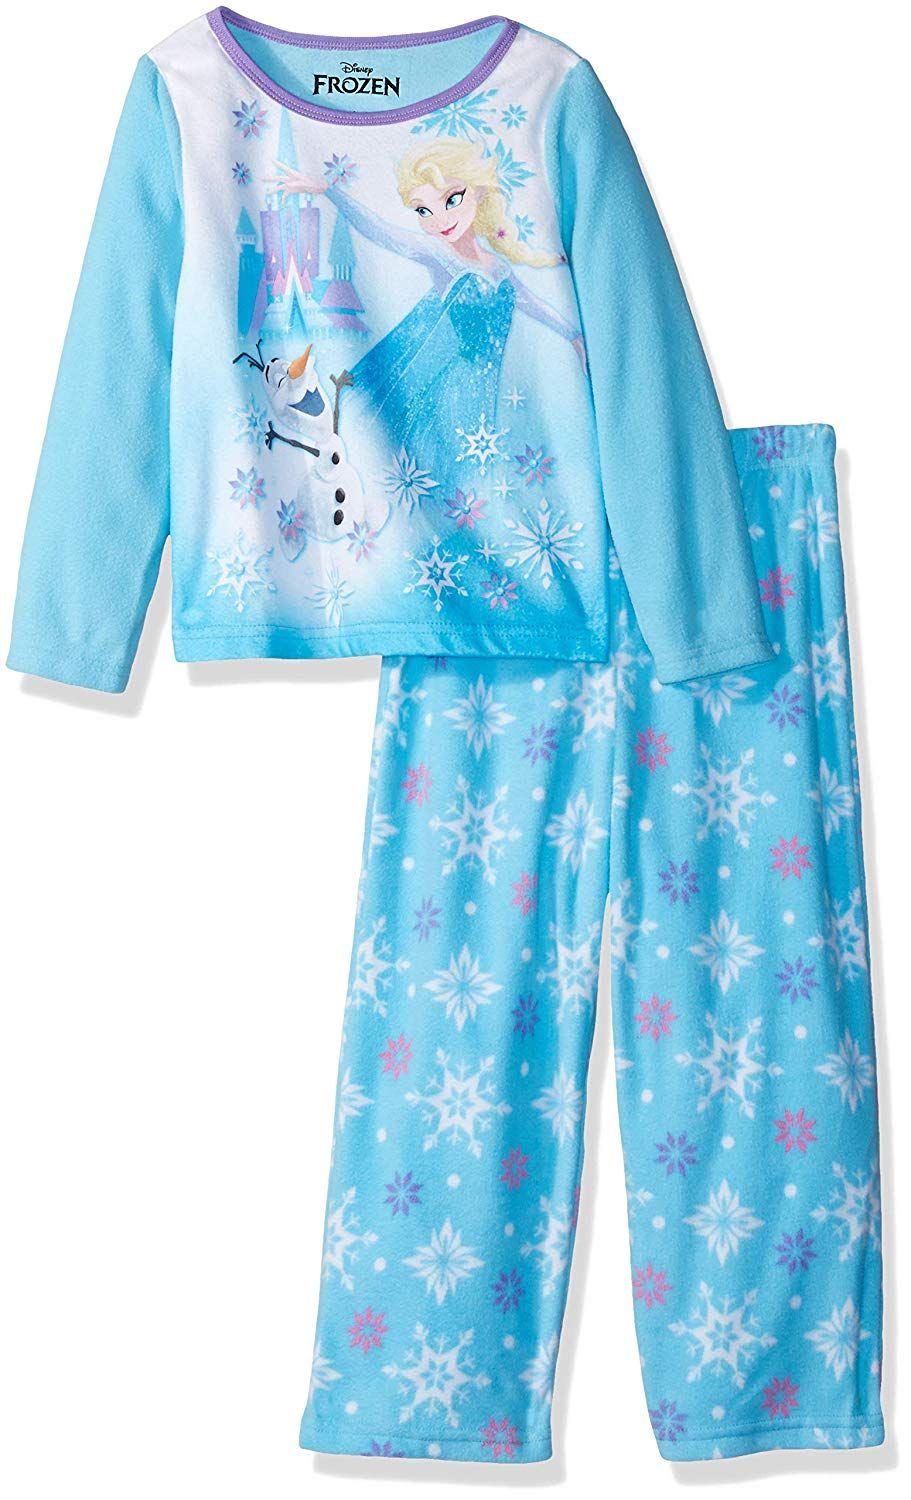 6f8fa769f8e2 Disney Girls  Frozen Elsa 2-Piece Fleece Pajama Set